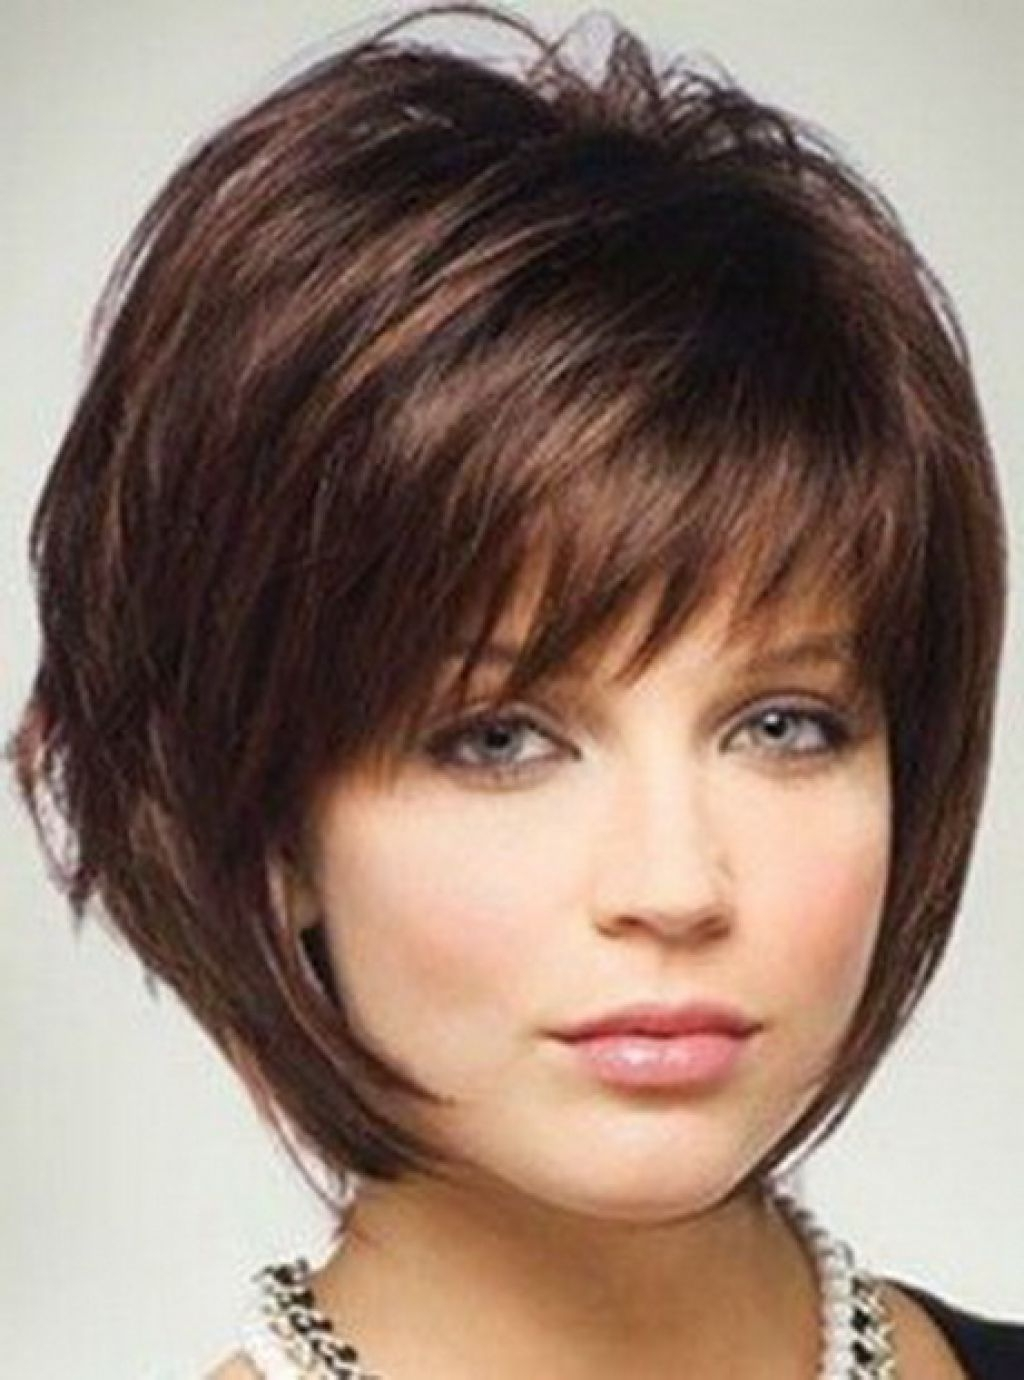 2018 Shaggy Hairstyles For Short Hair For Short And Shaggy Hairstyles – Hairstyle For Women & Man (View 11 of 15)